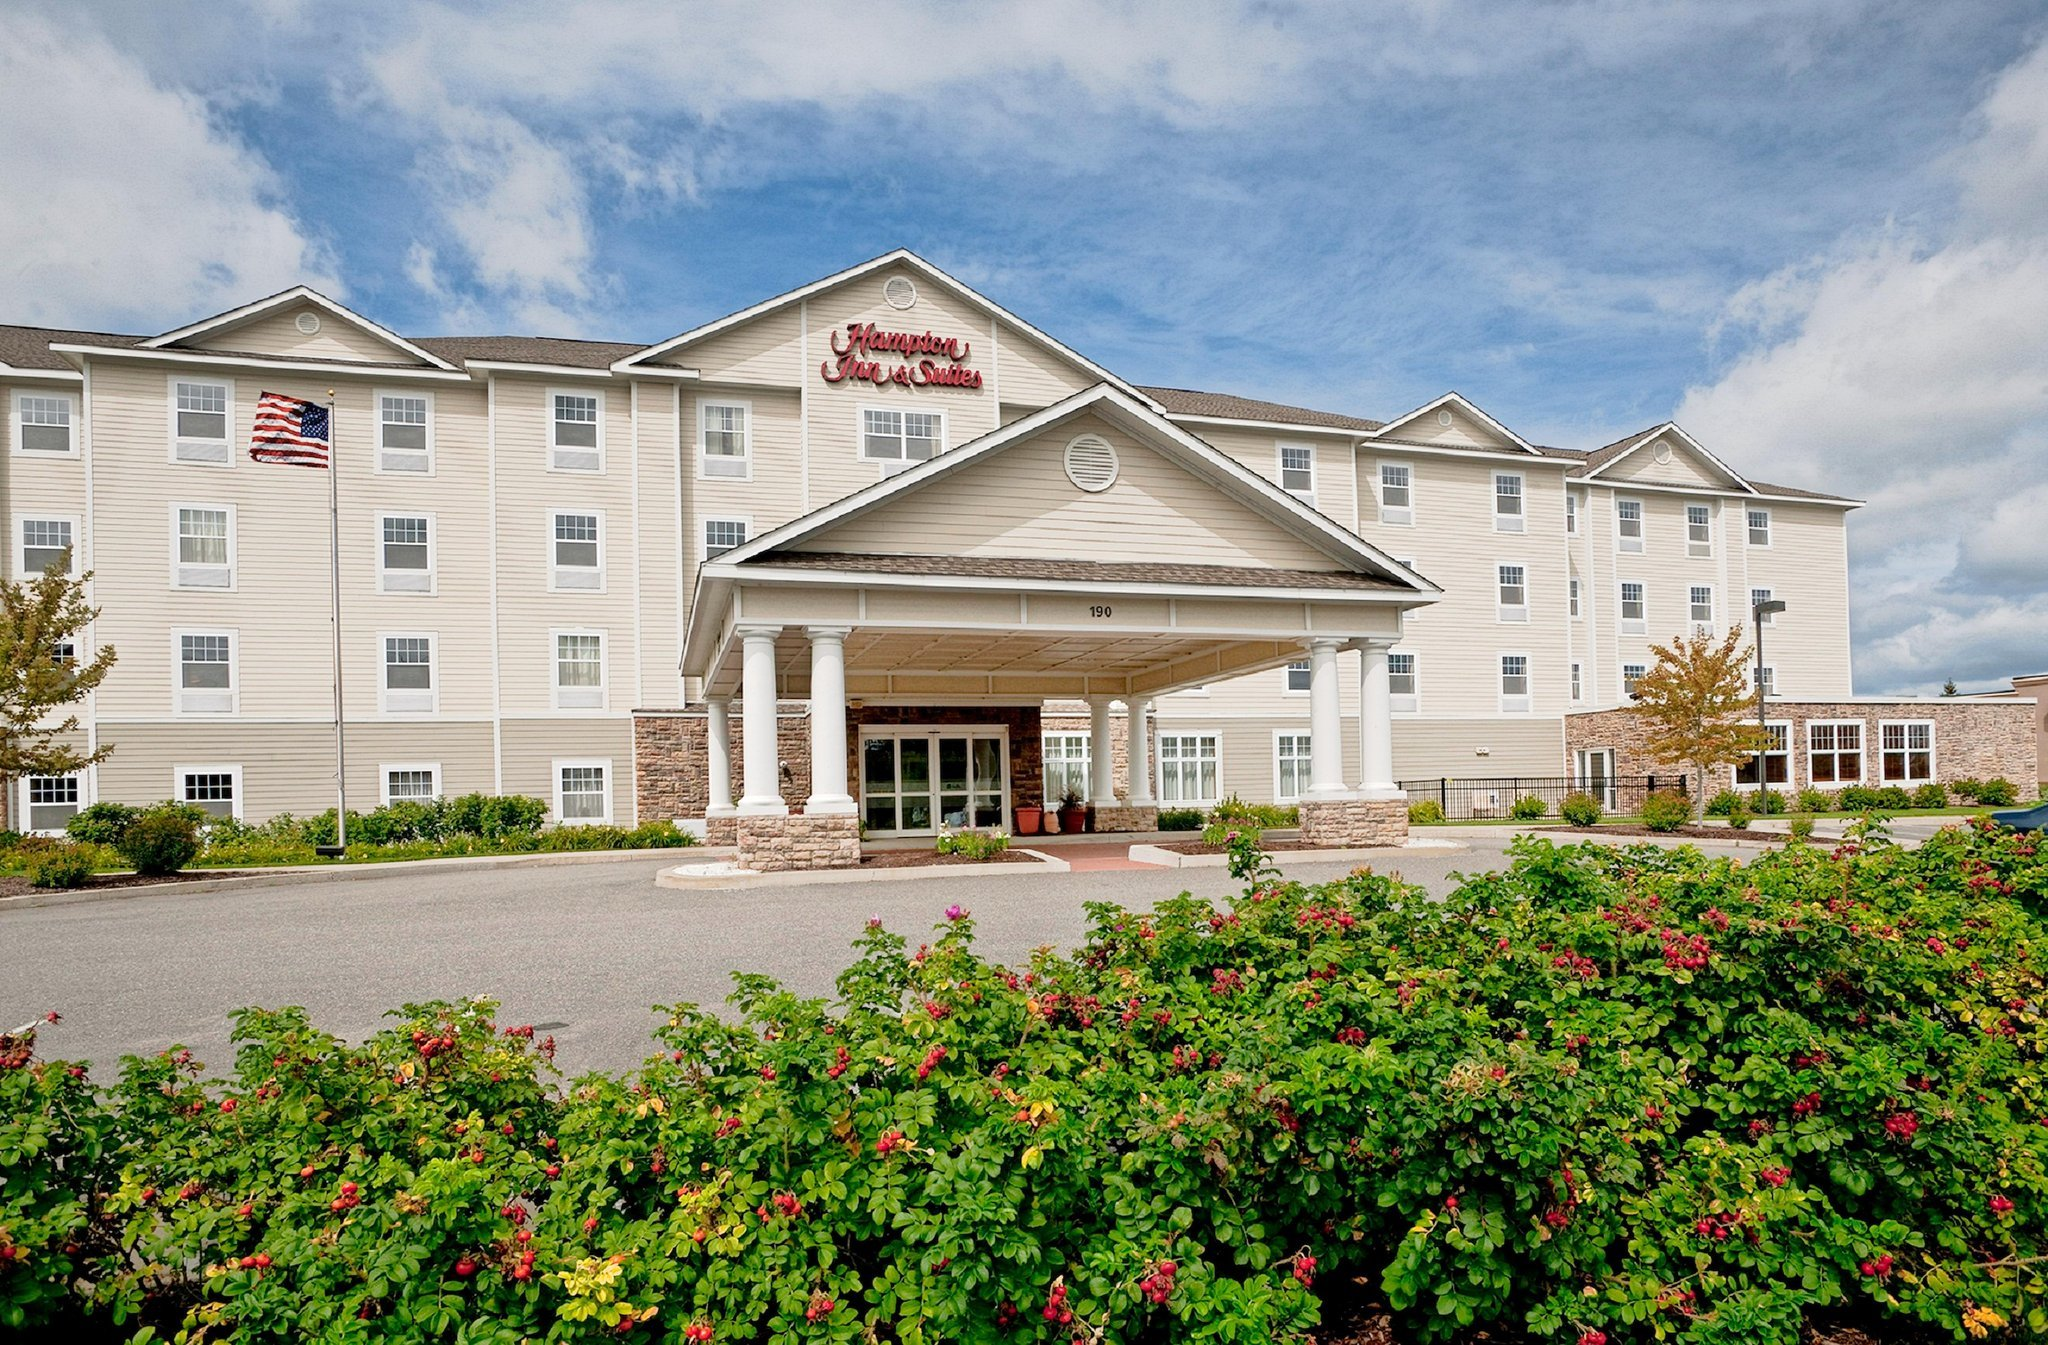 ‪Hampton Inn & Suites Rockland‬